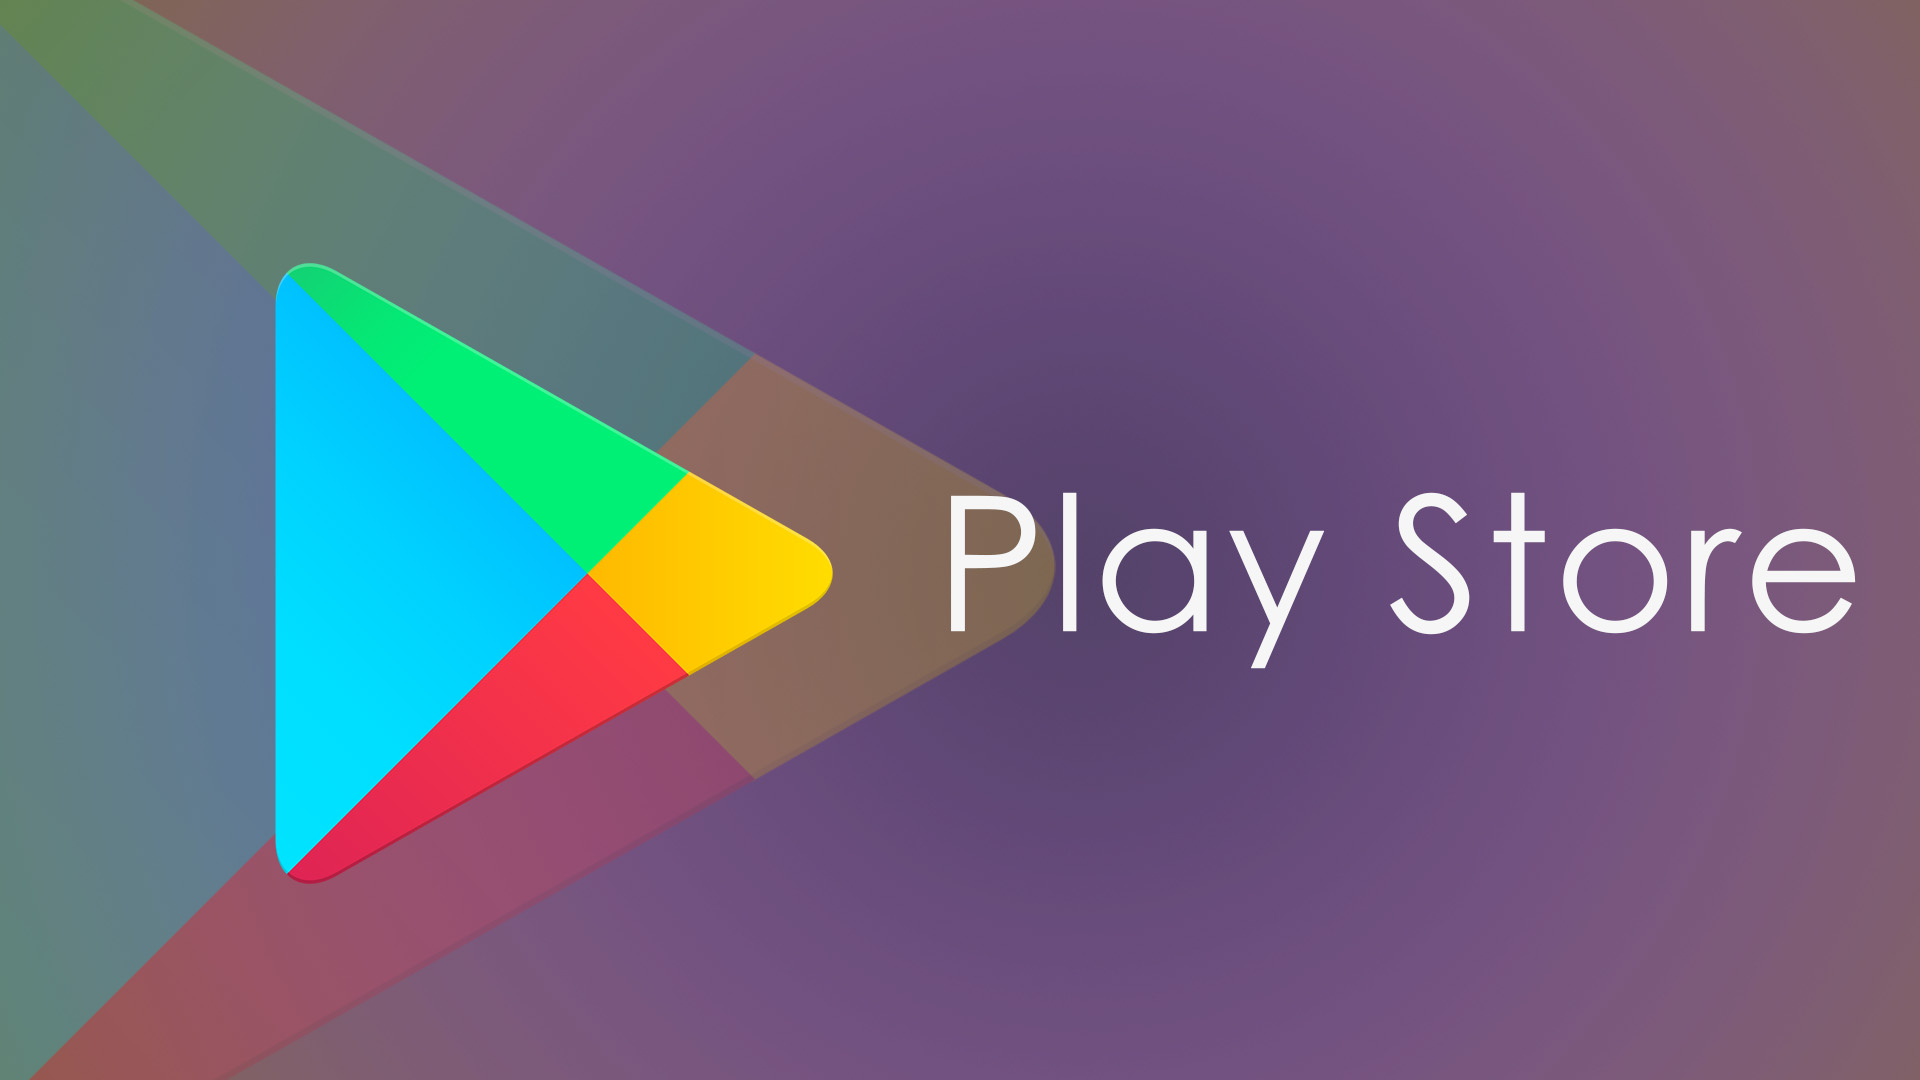 Play Store Logo Google Sale Premium Apps For Free Goandroid